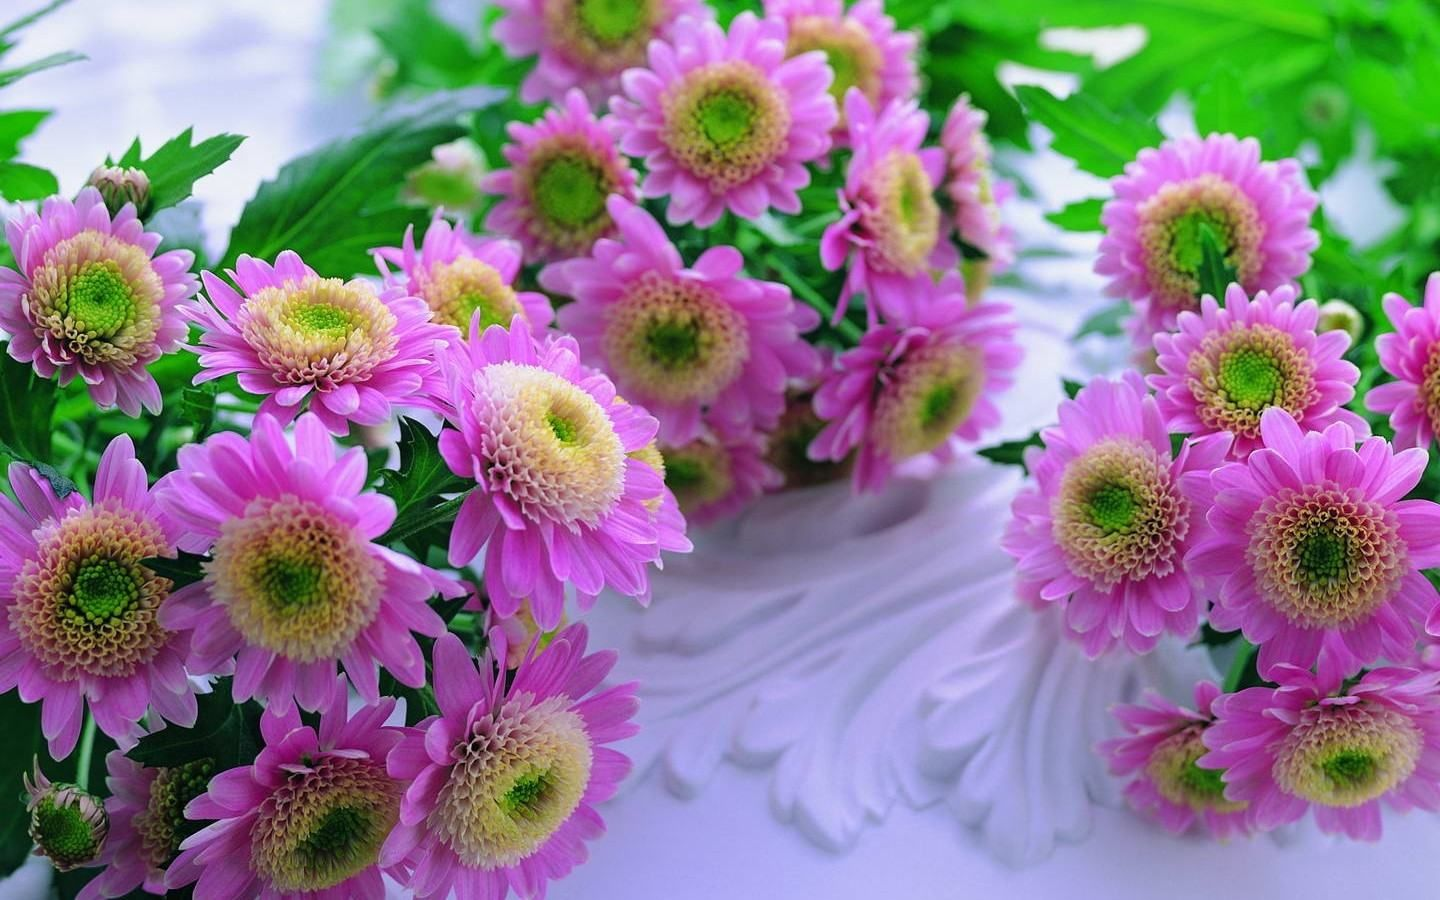 Flowers Background Pictures For Desktop Free Download HD